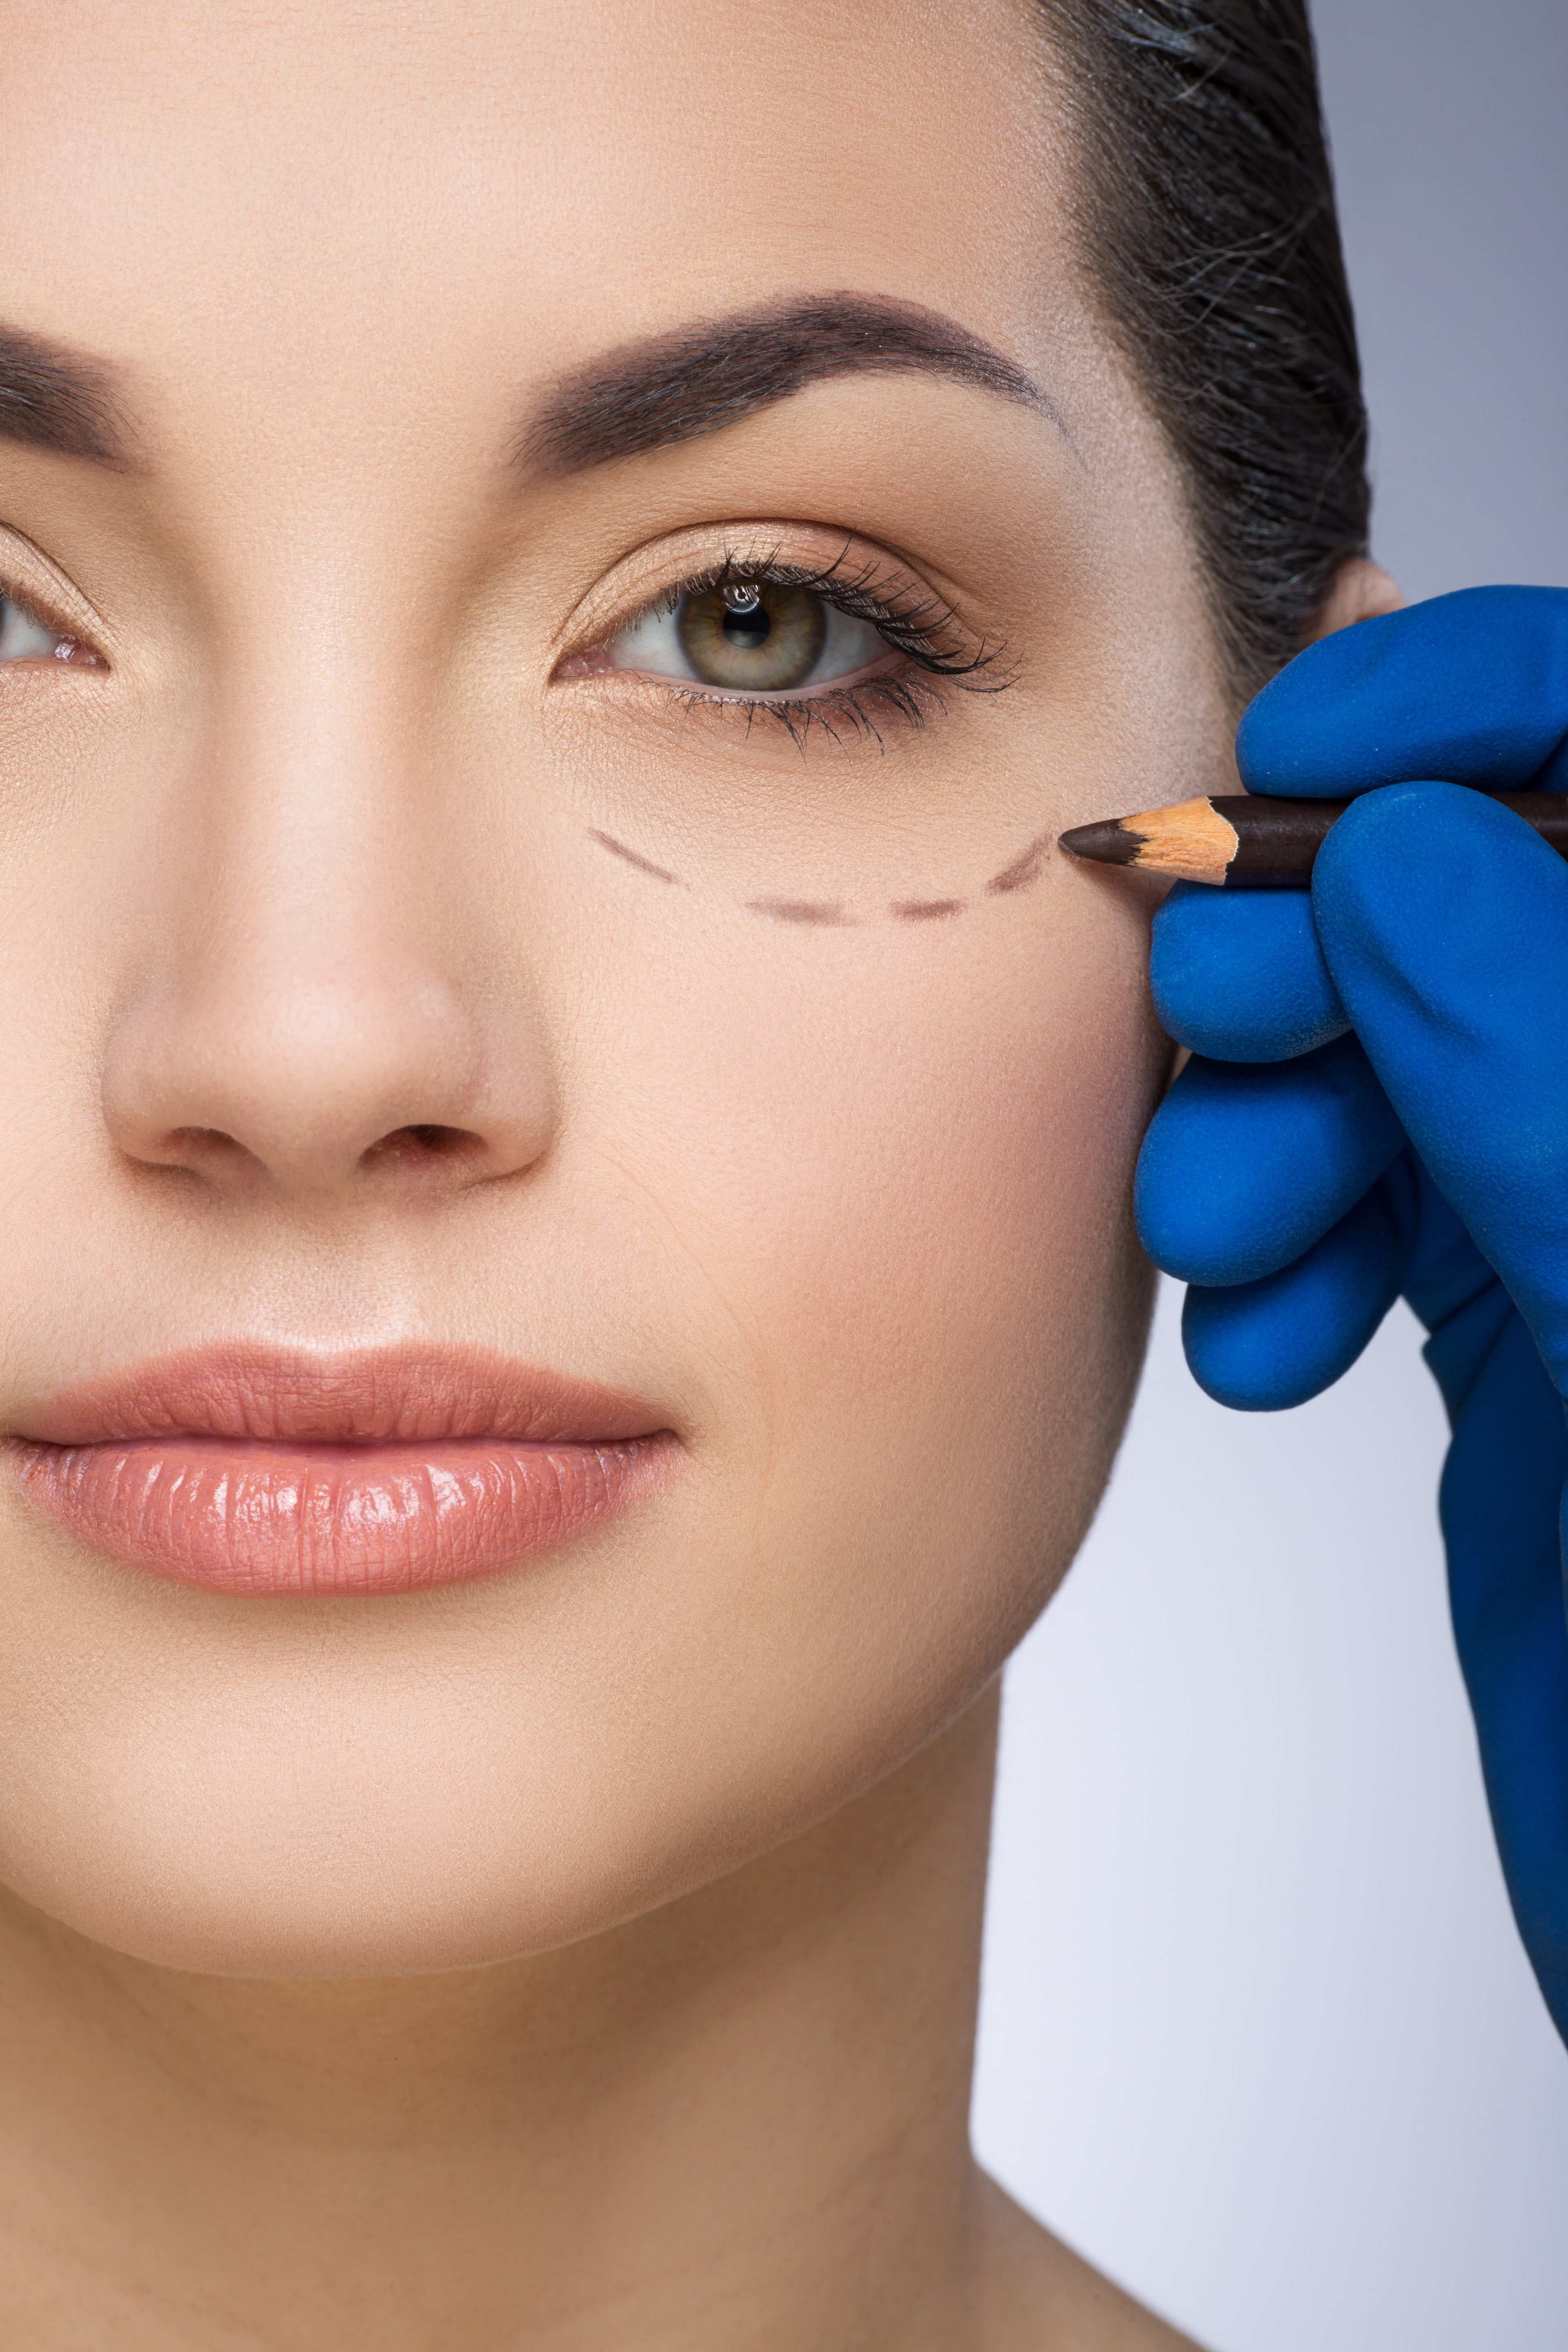 Botox Contouring: How it Works for the Jawline